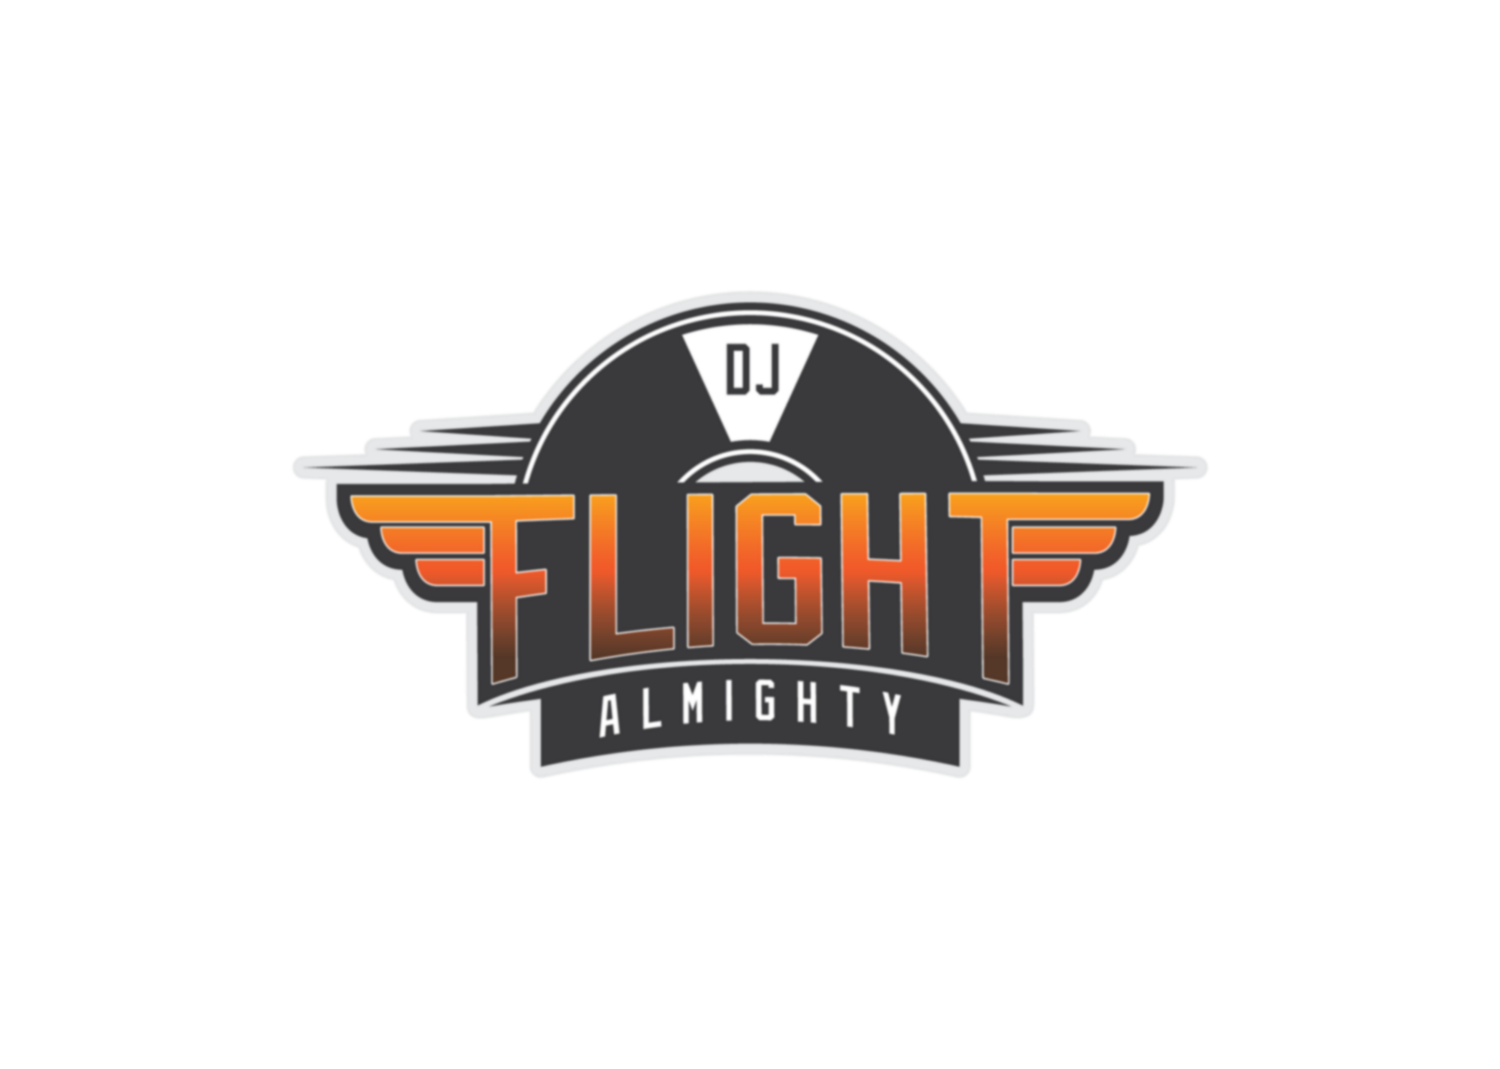 FLIGHT ALMIGHTY